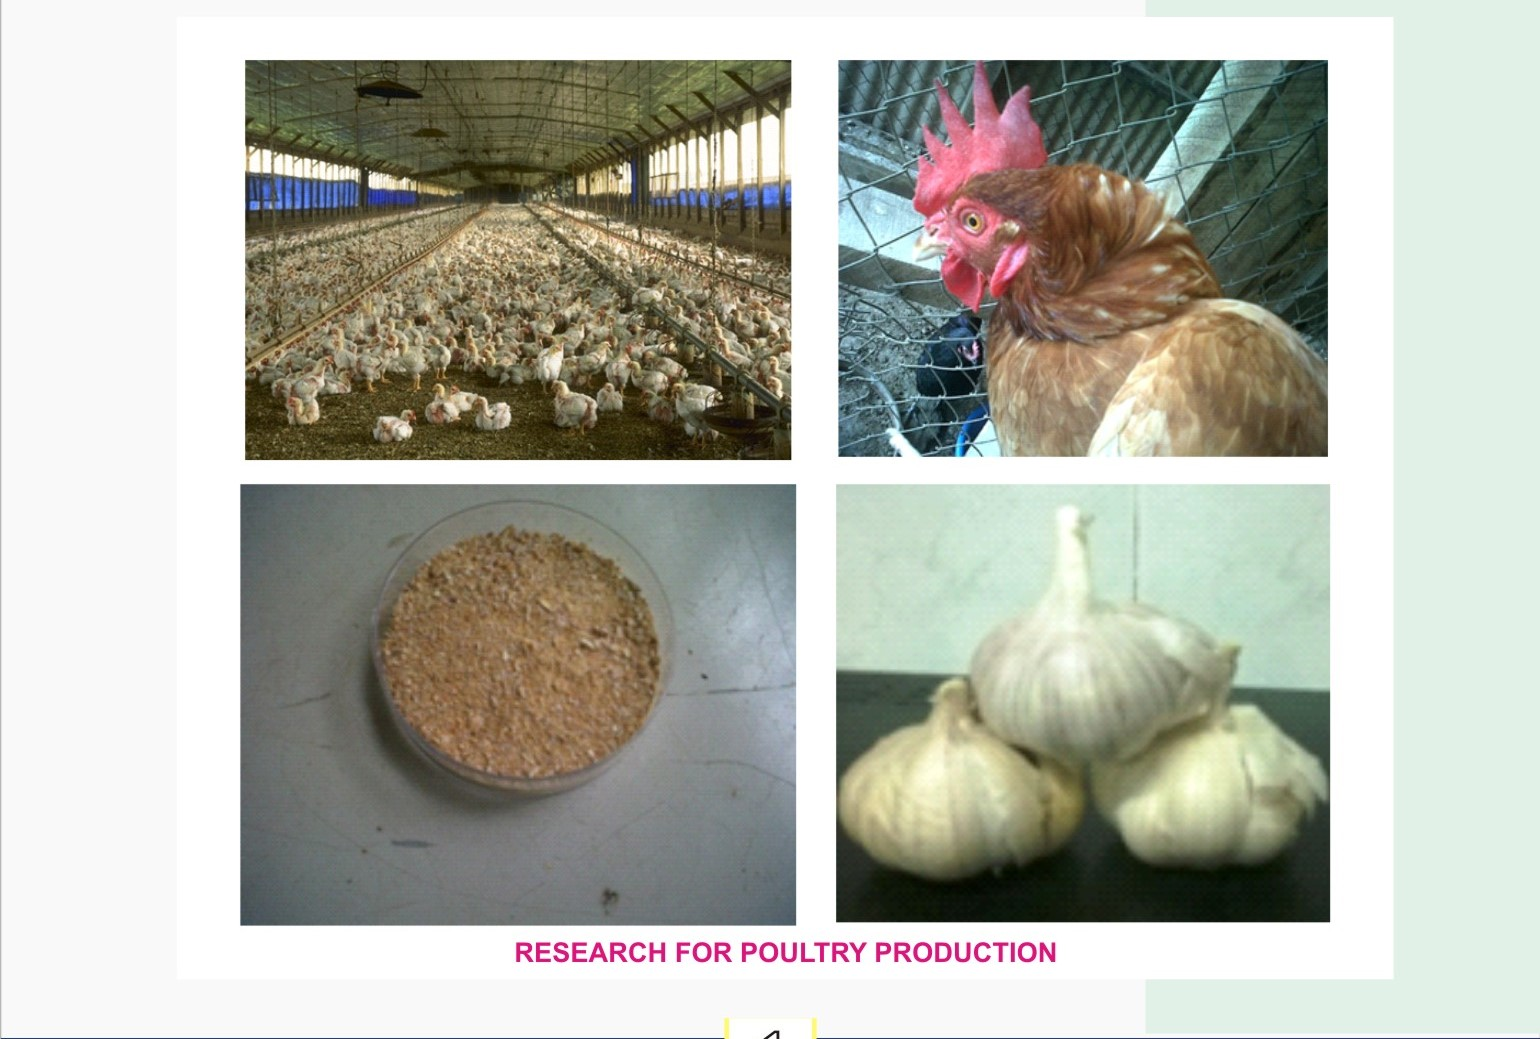 Research for Poultry Production